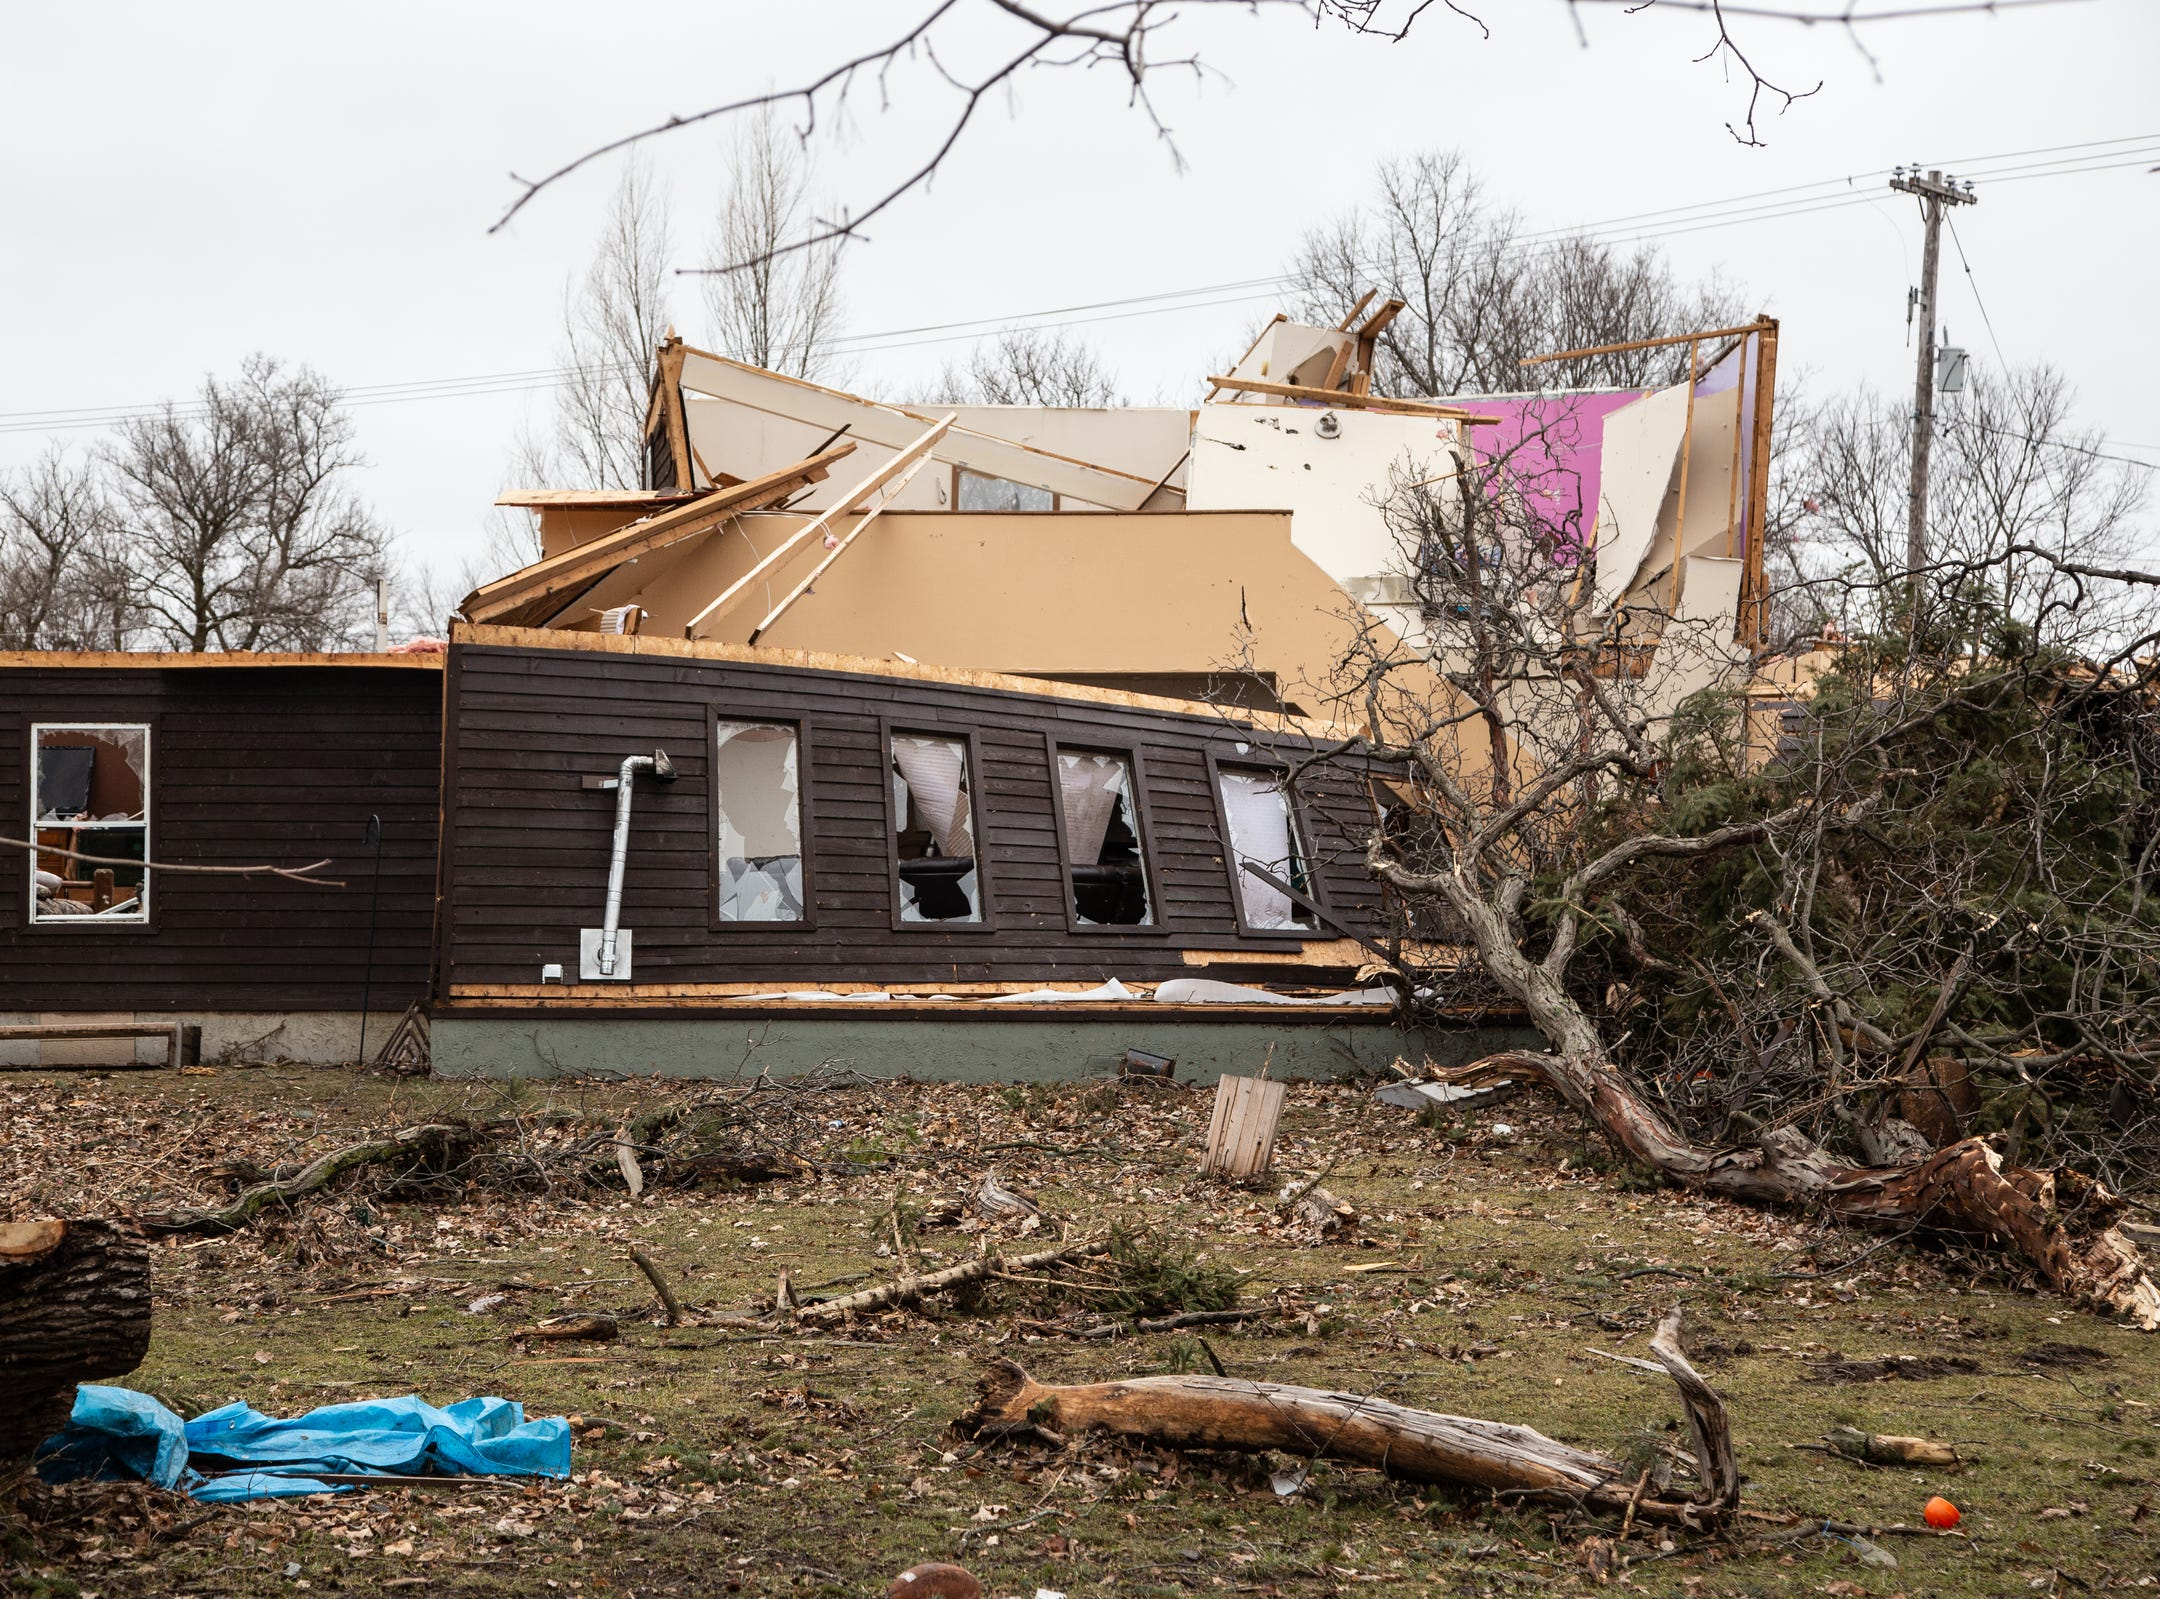 A home shows damage from a tornado that came through Shiawassee County overnight on Newburg Rd. in Bancroft on Friday, March 15, 2019.